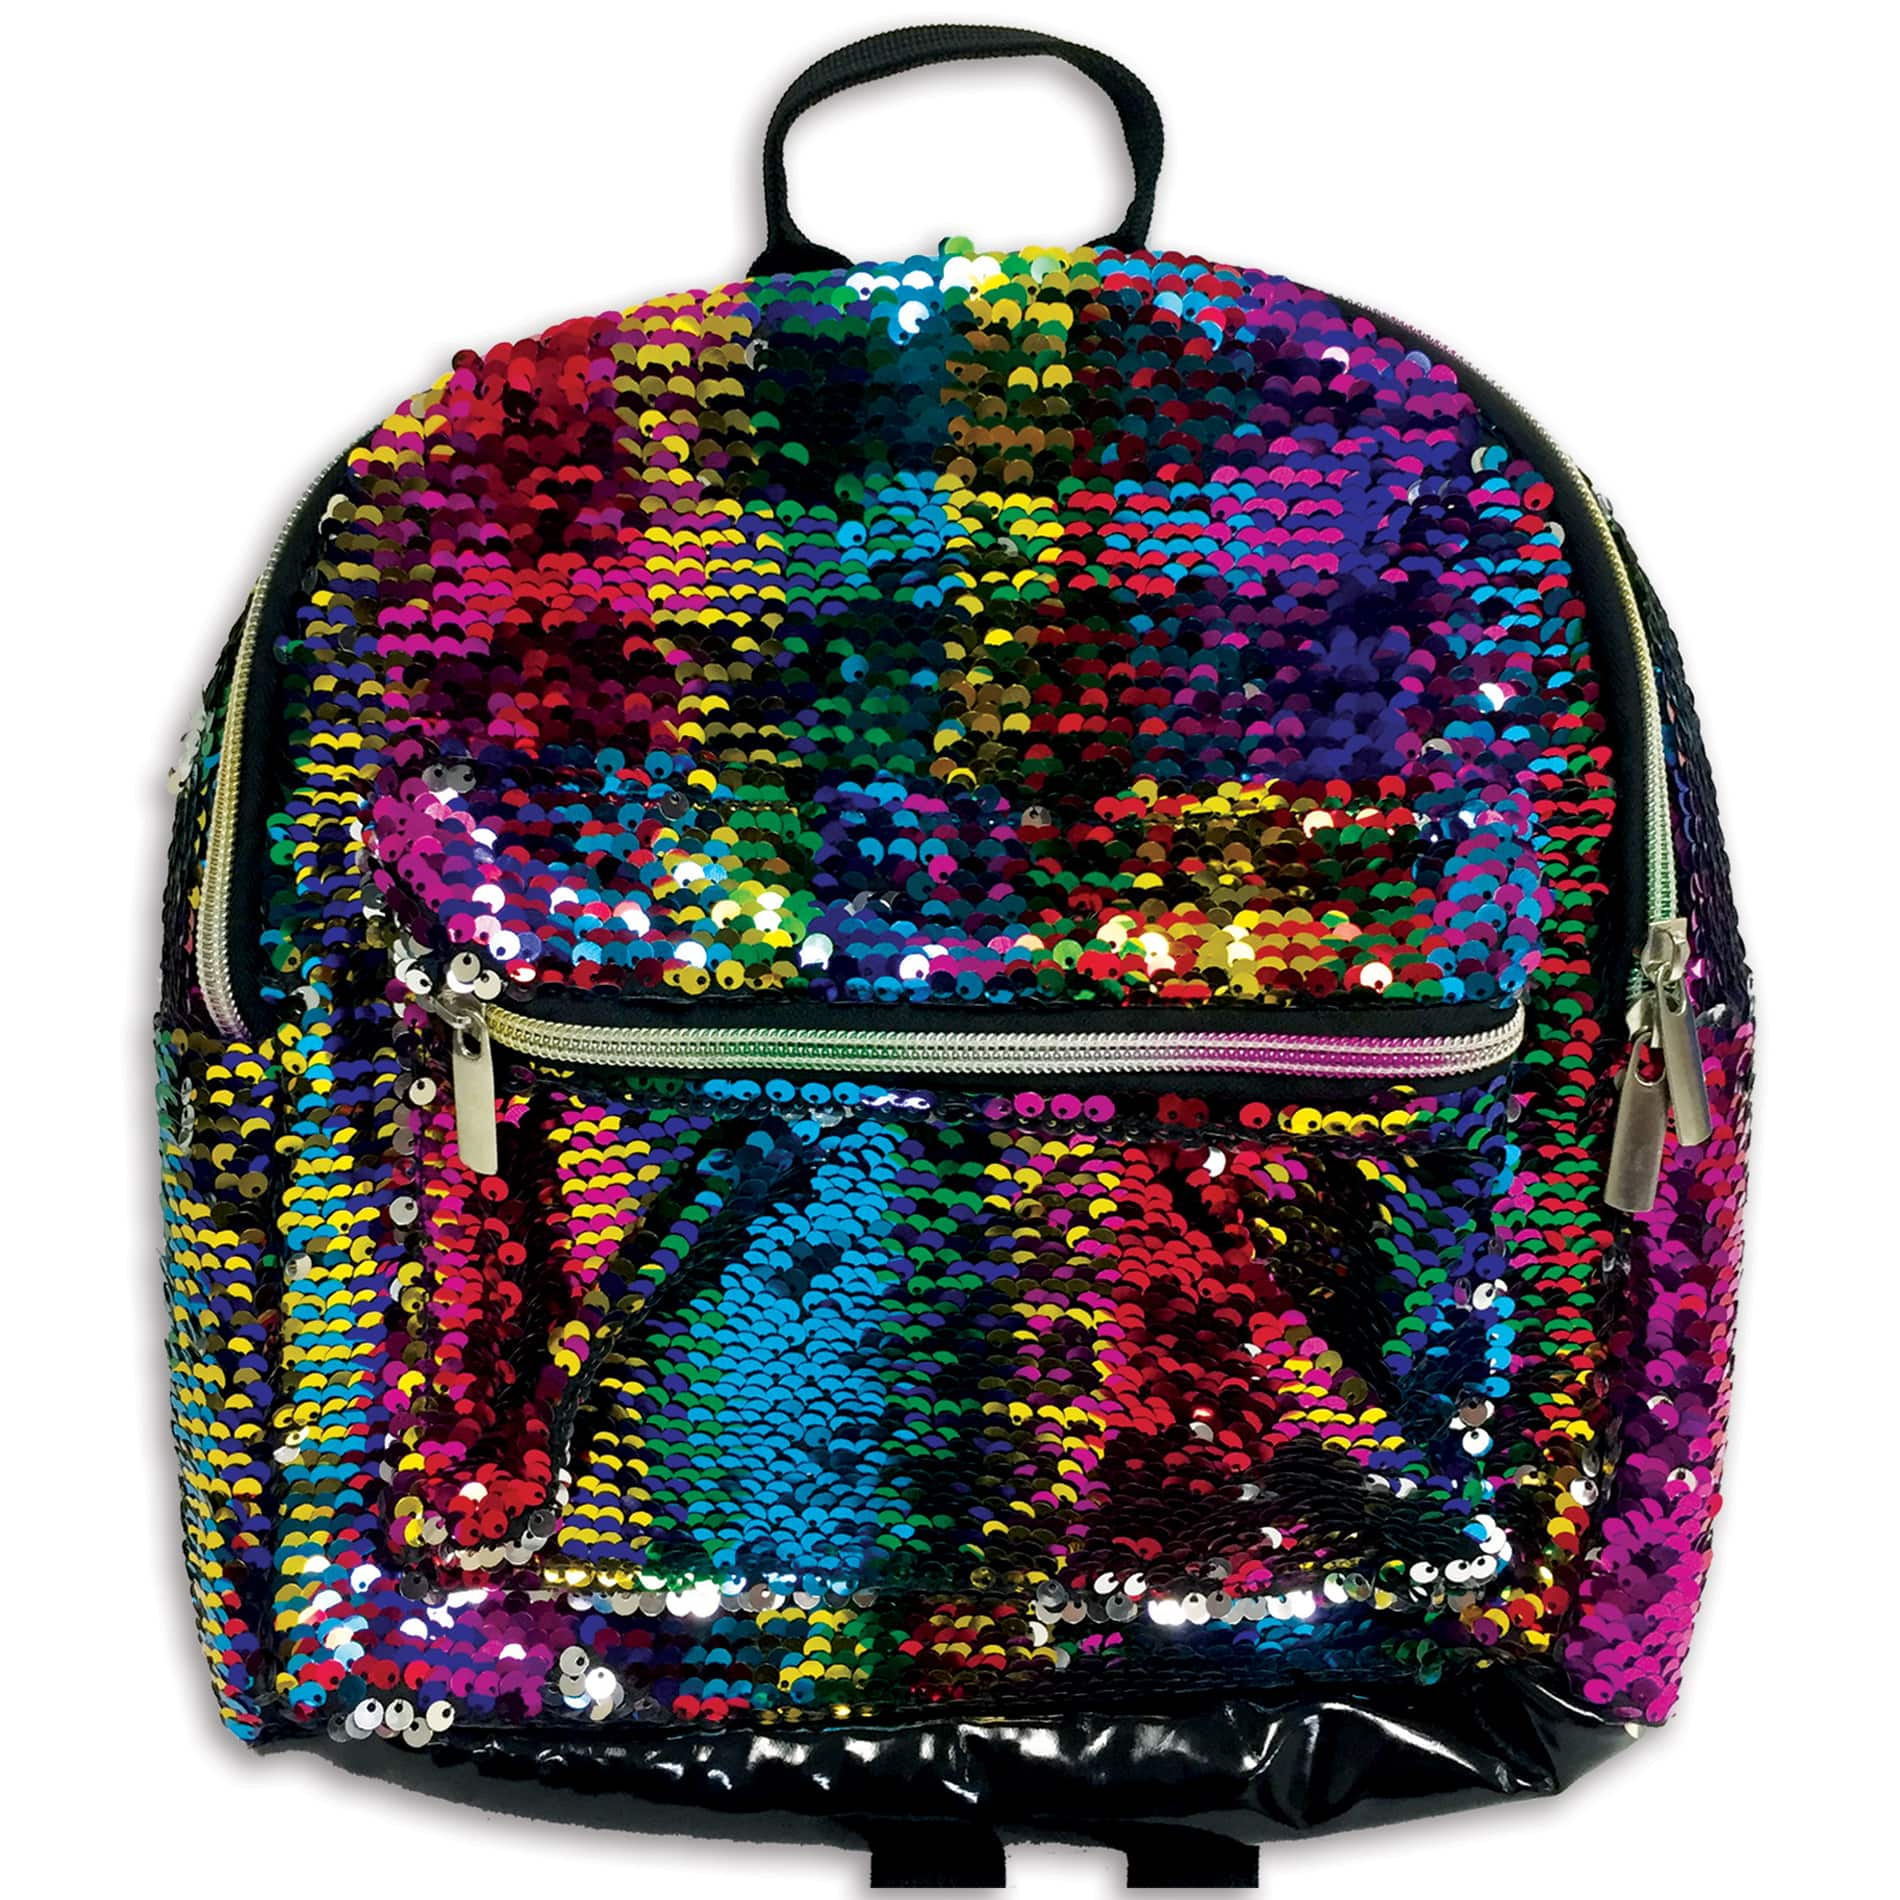 Kmart  $5 back in points on a $10 school supplies purchase.B&M or pick-up. $7 sequin backpack